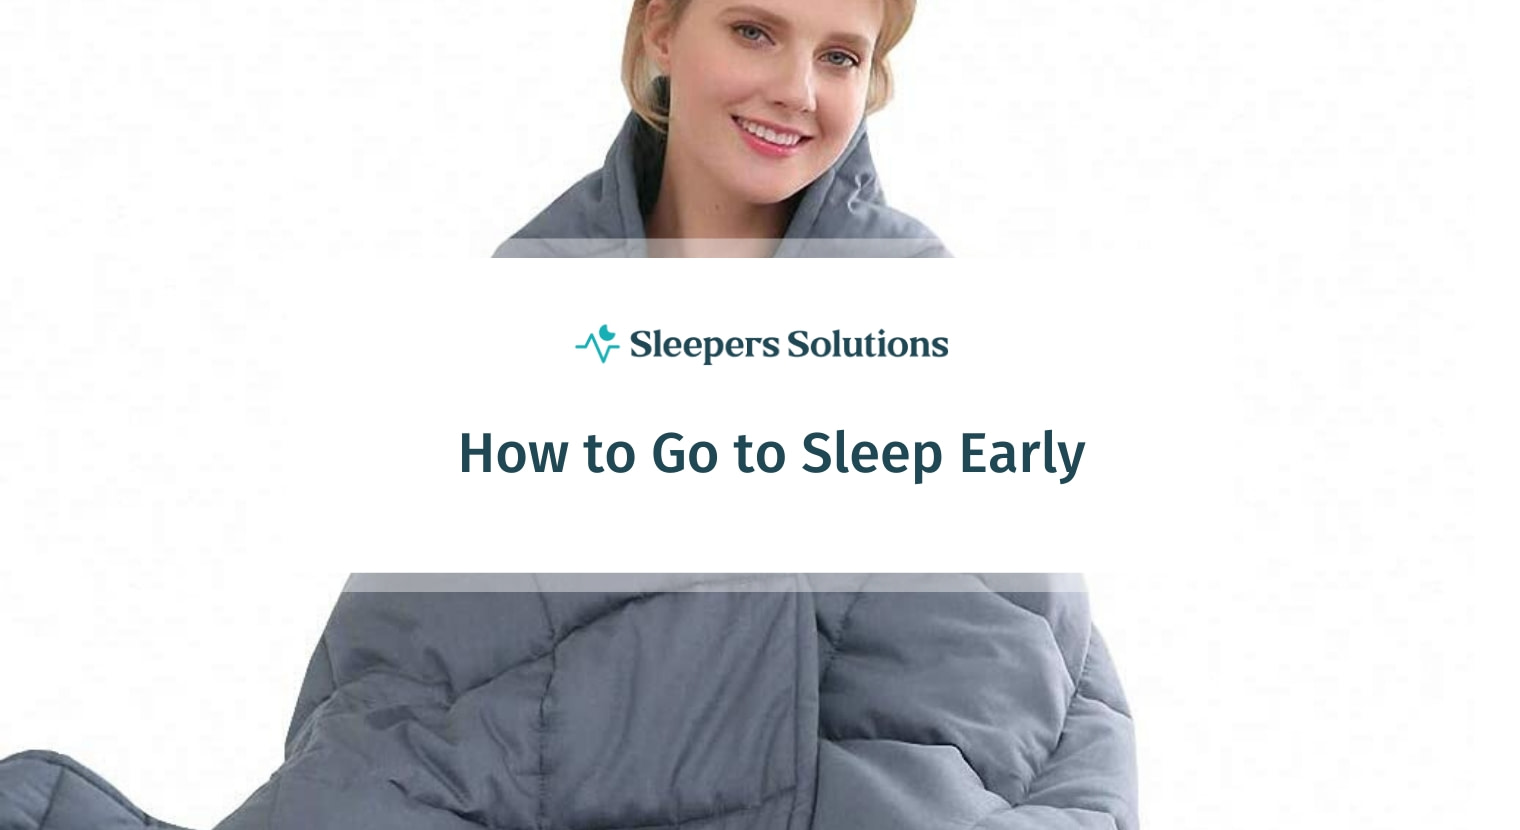 How to Go to Sleep Early